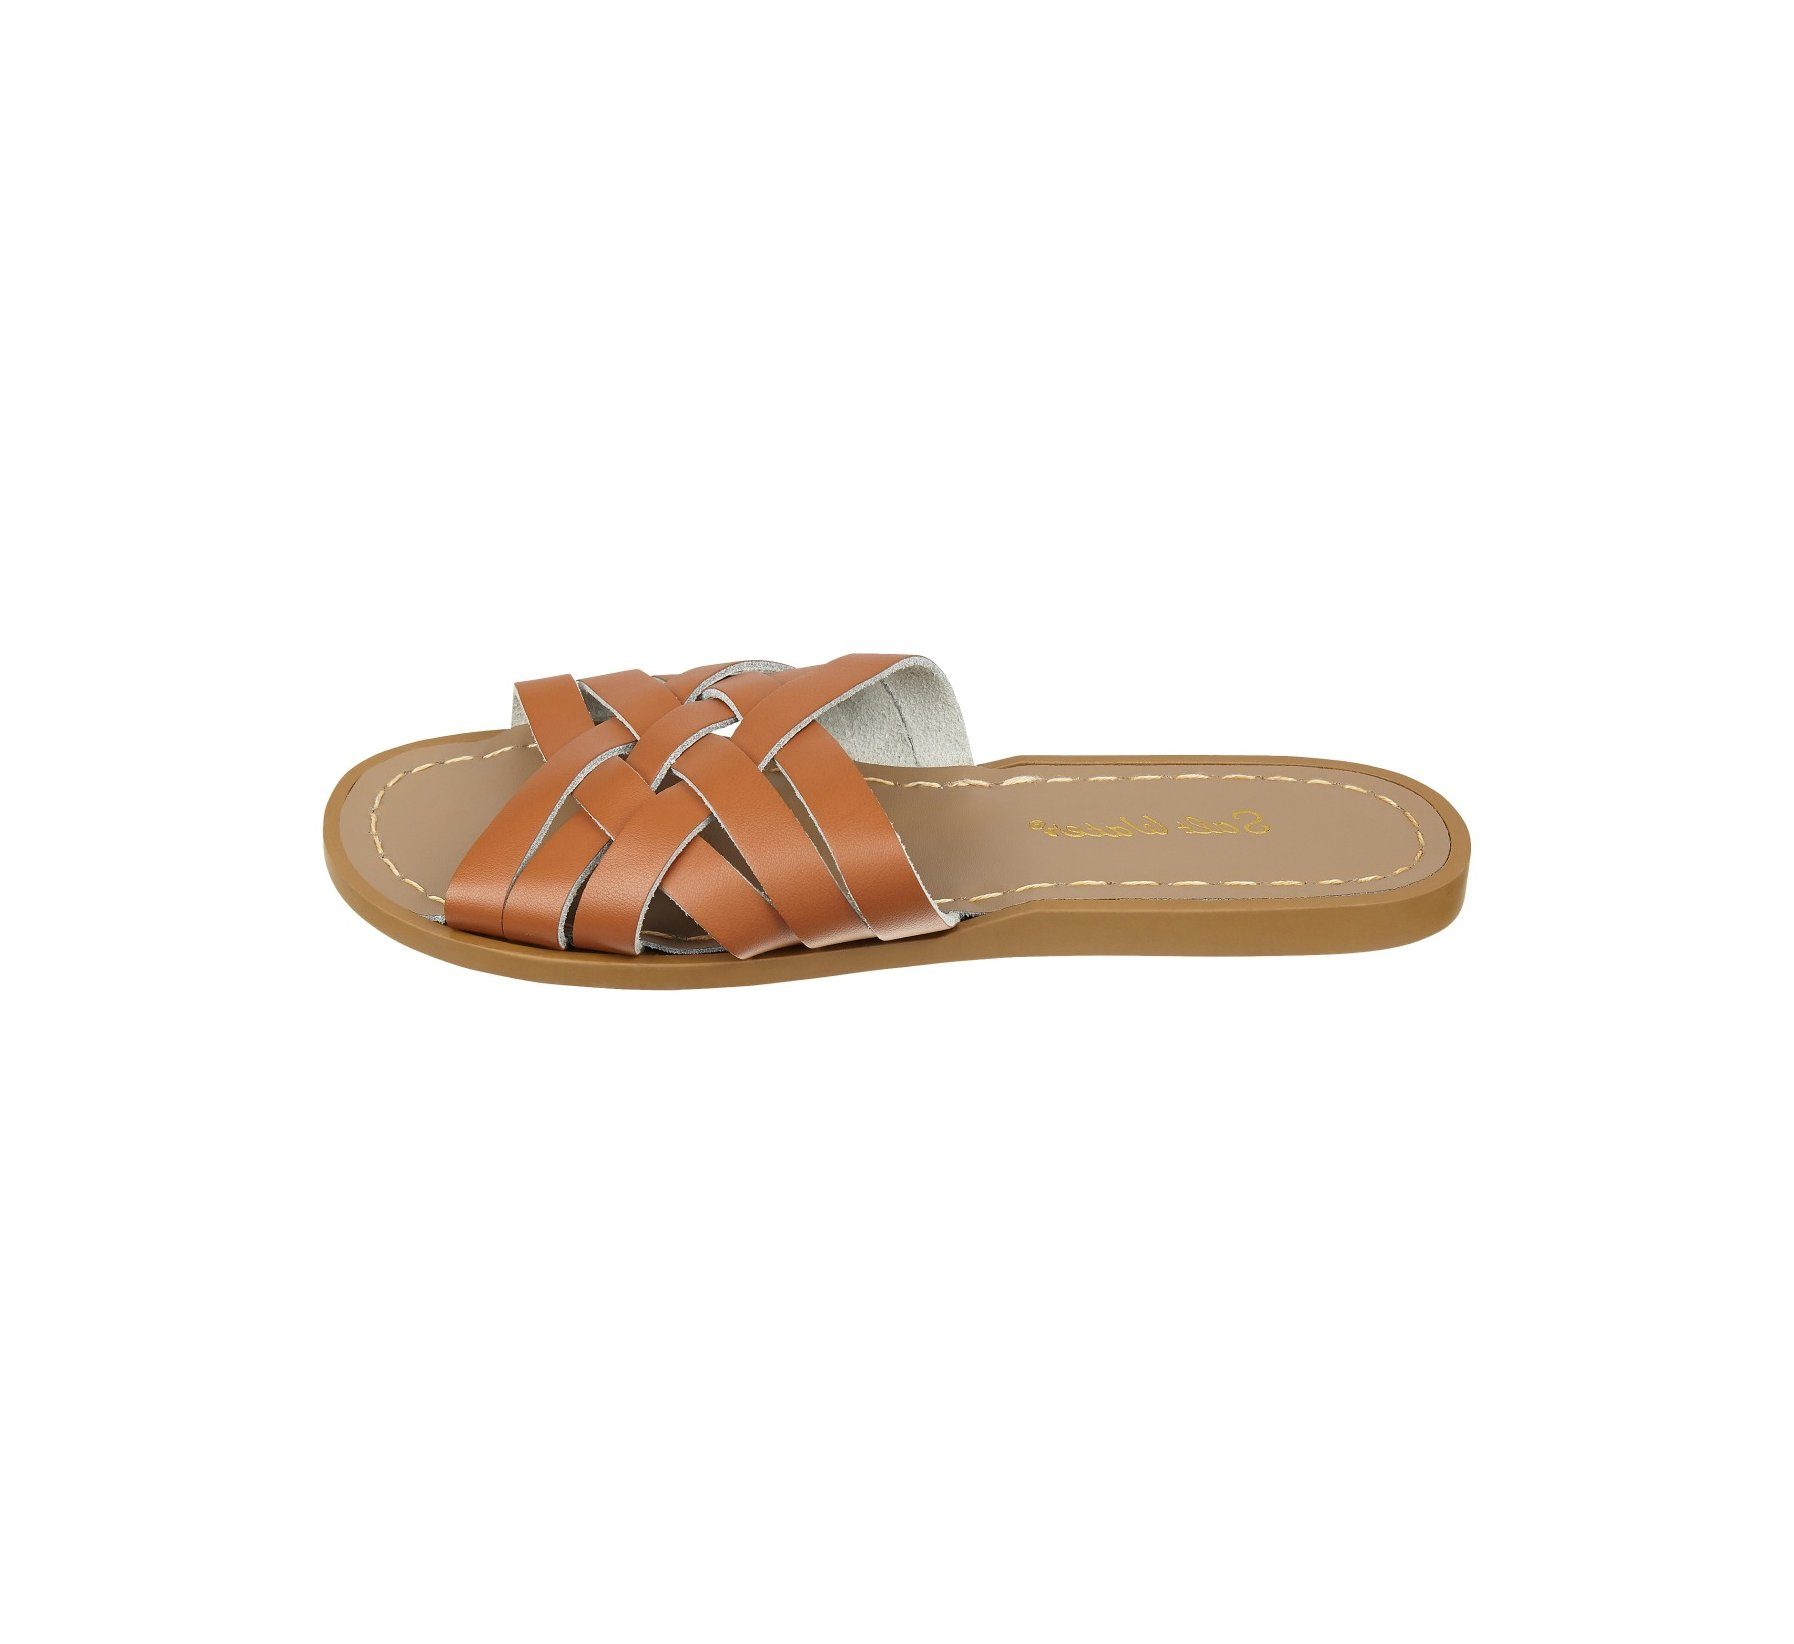 Retro Slide Sawo Matang / Perang Kulit - Salt Water Sandals